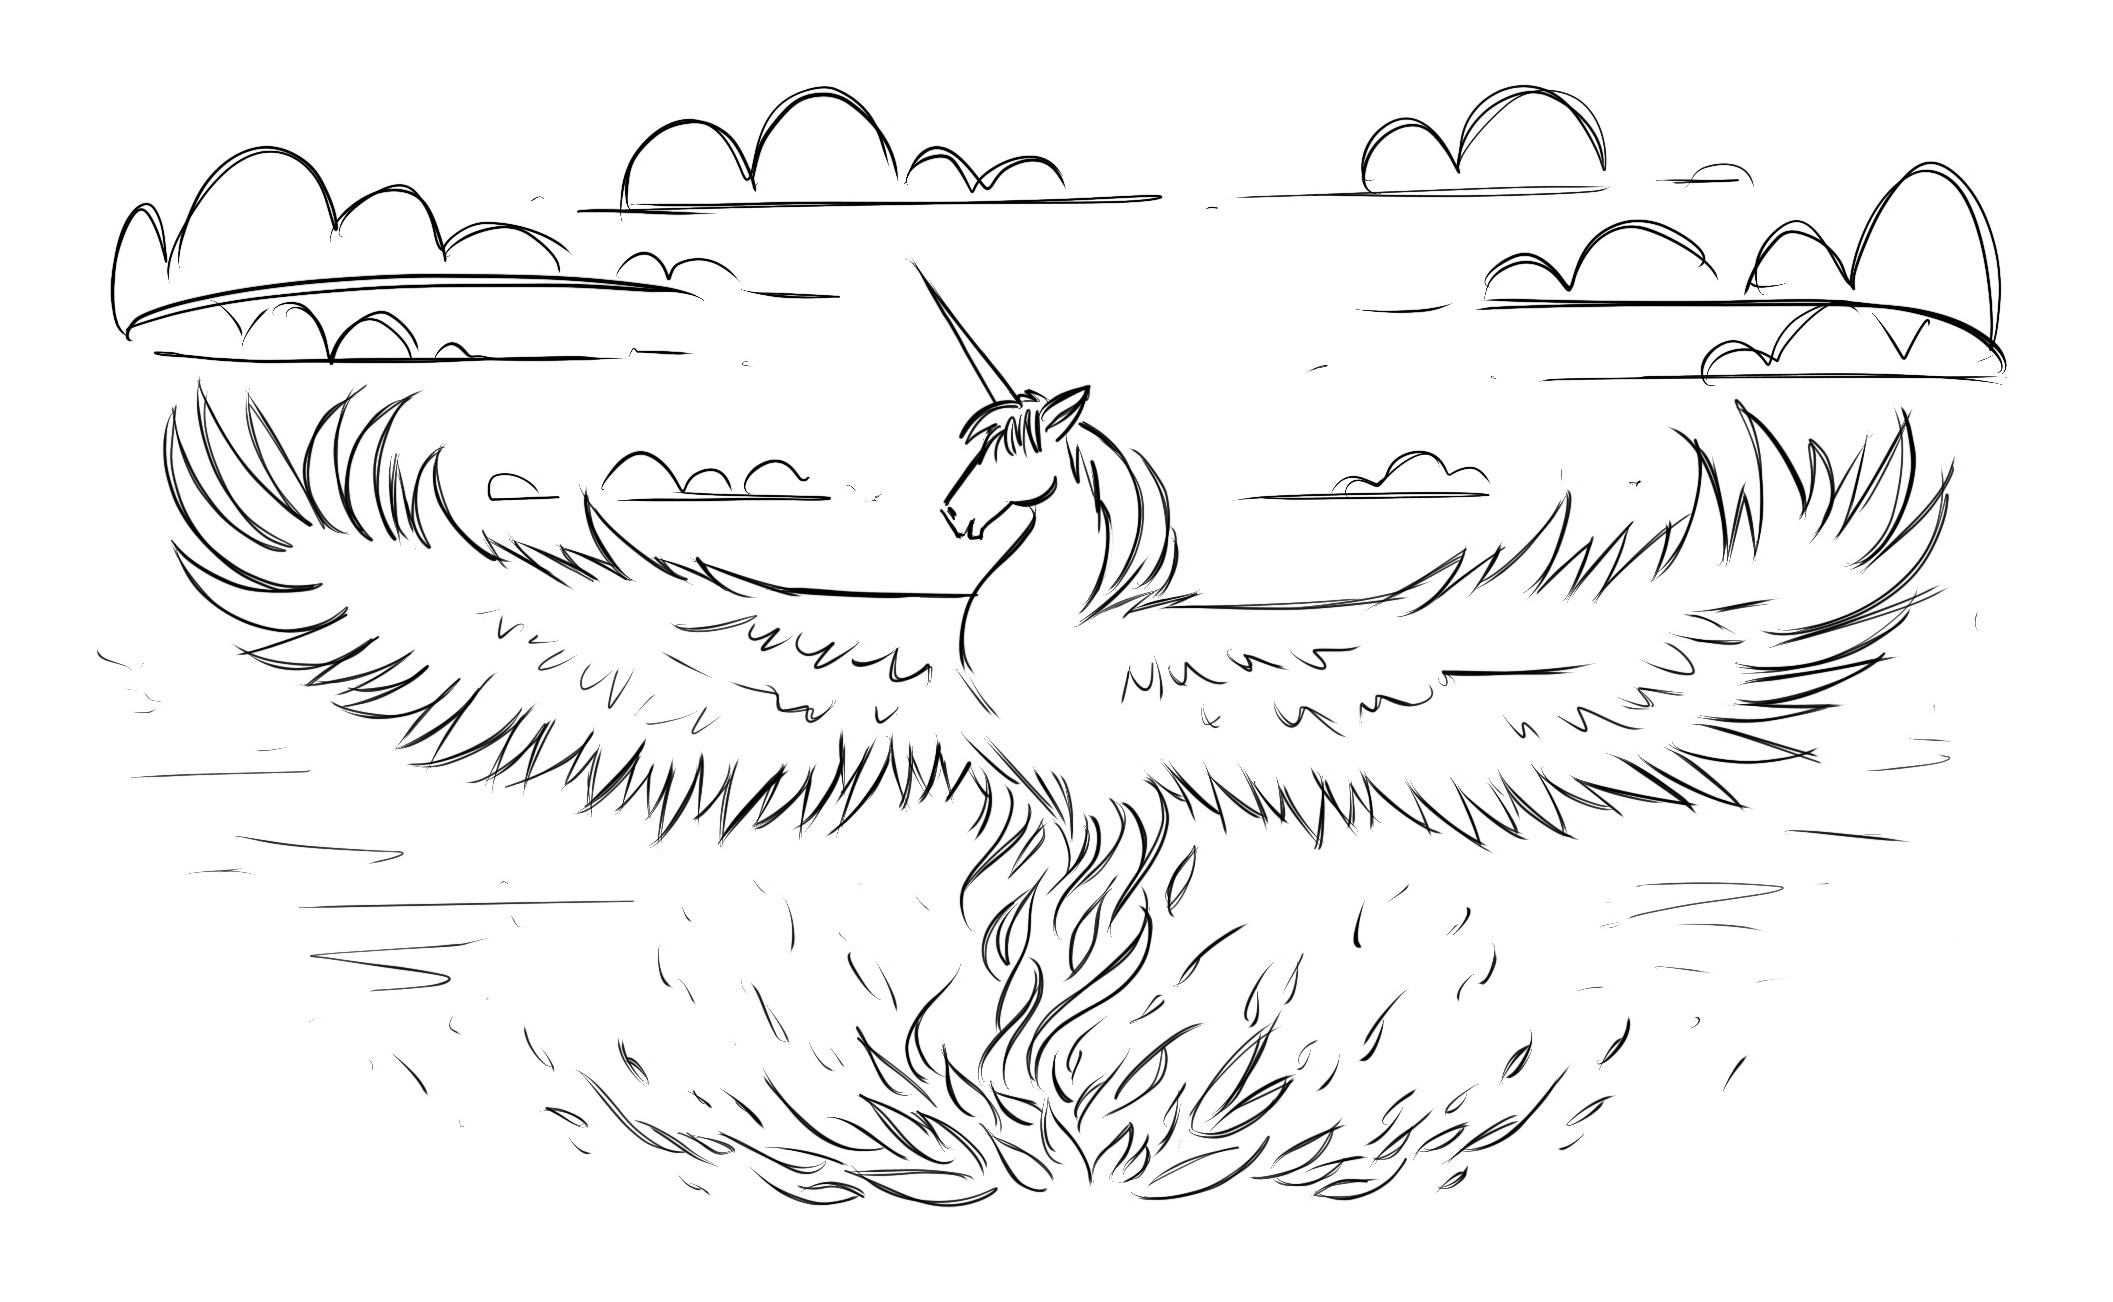 An illustration of a unicorn emerging from fiery ashes in the shape of a phoenix.